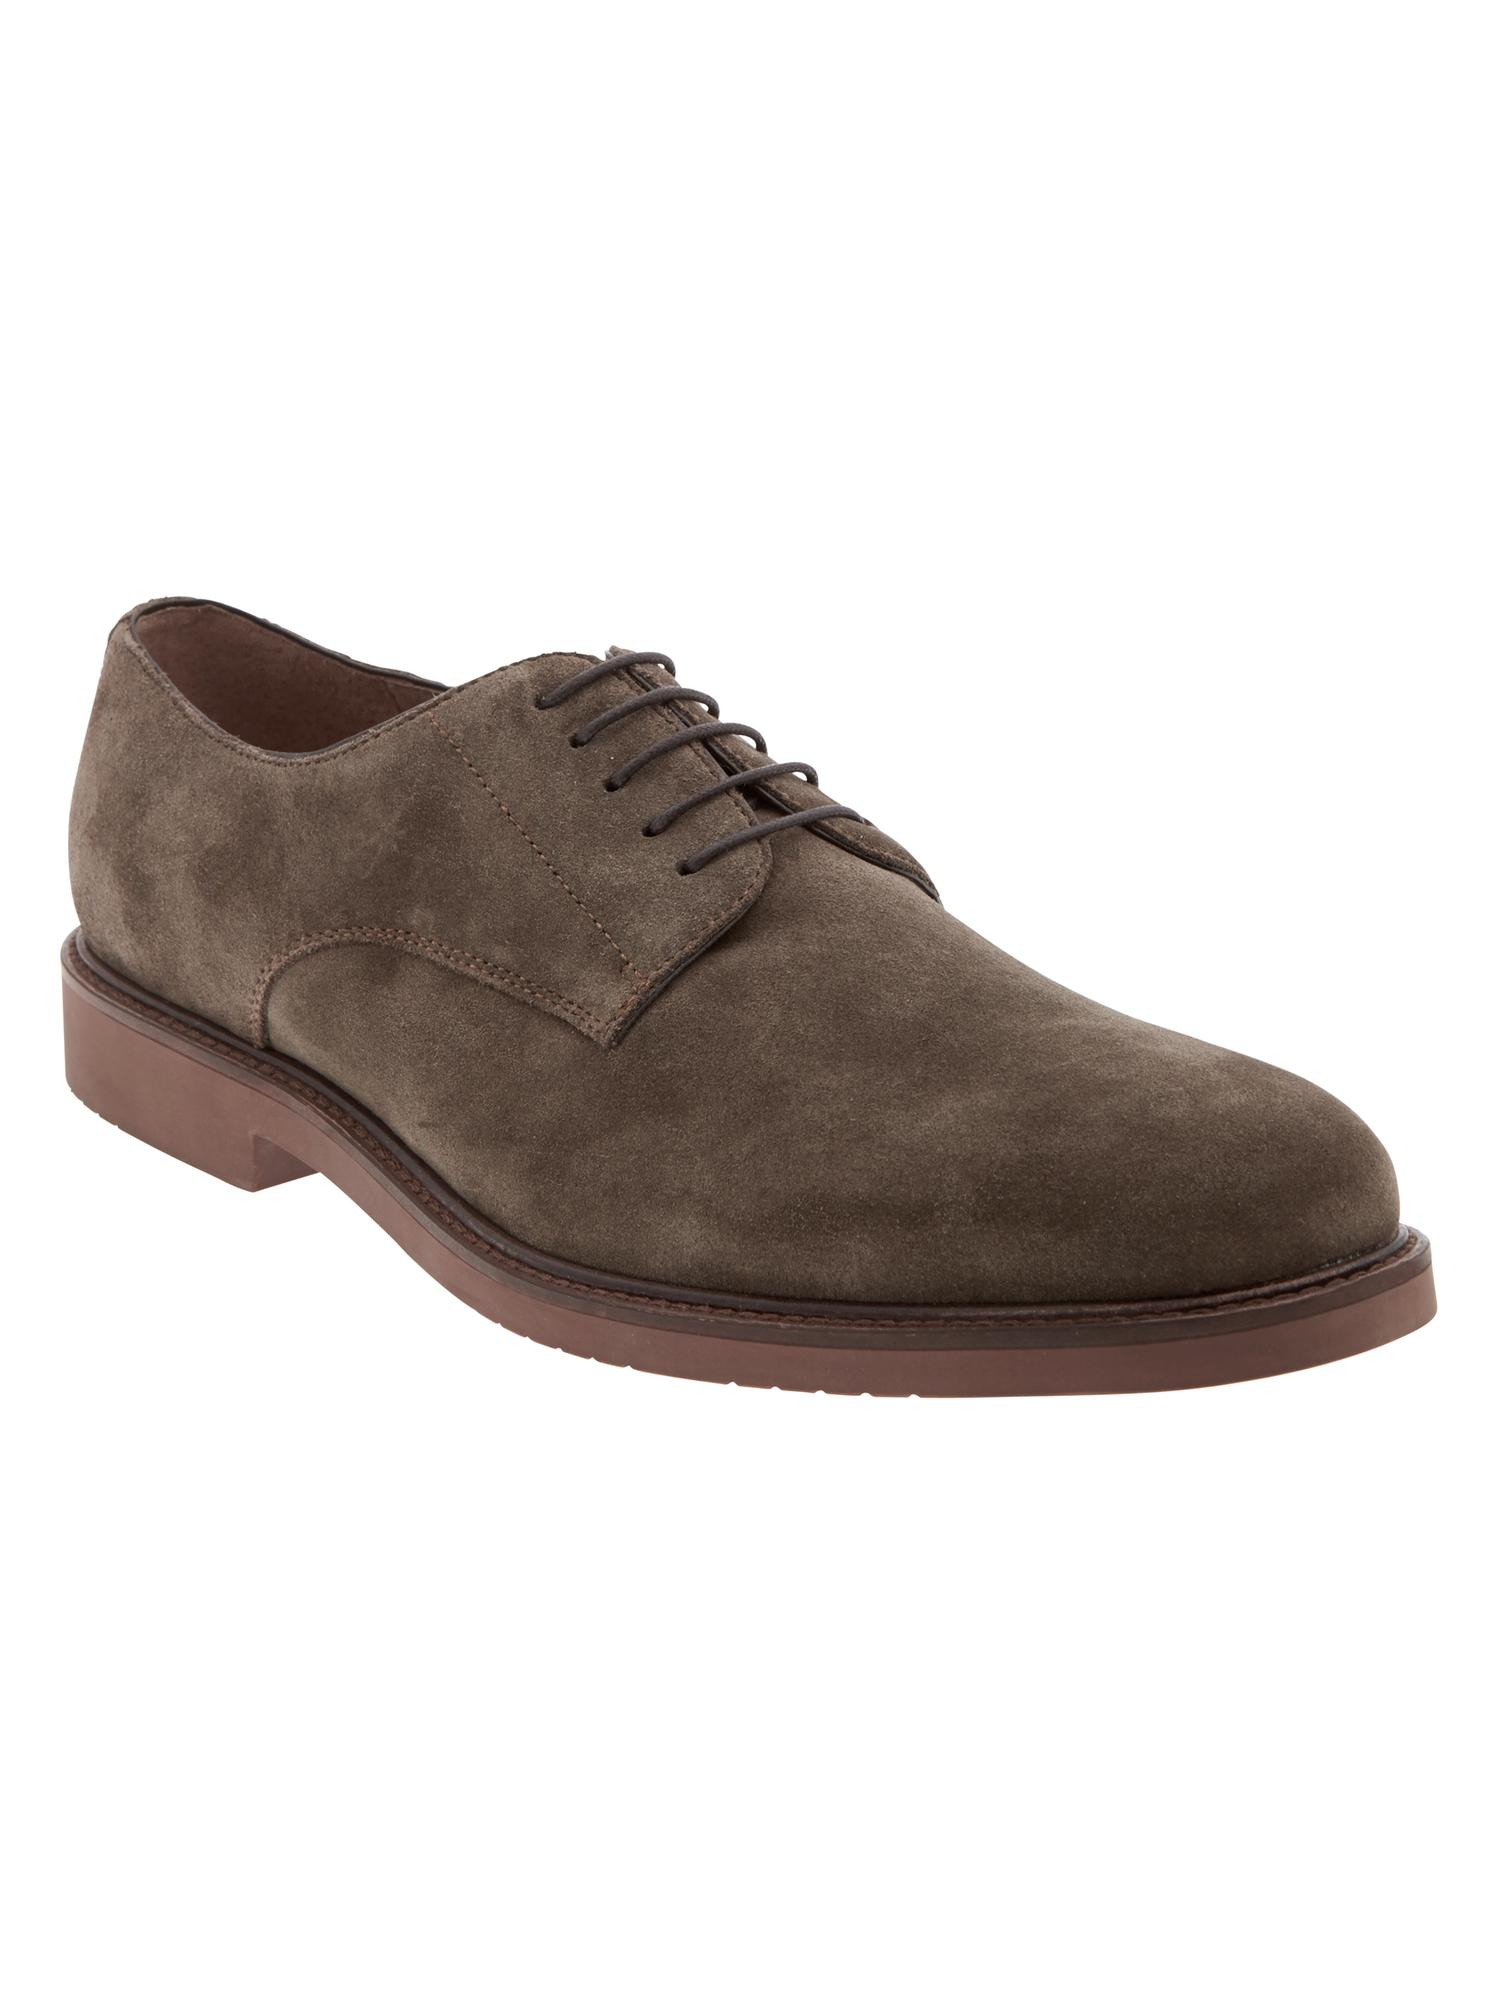 Banana Republic Mens Shoes Review